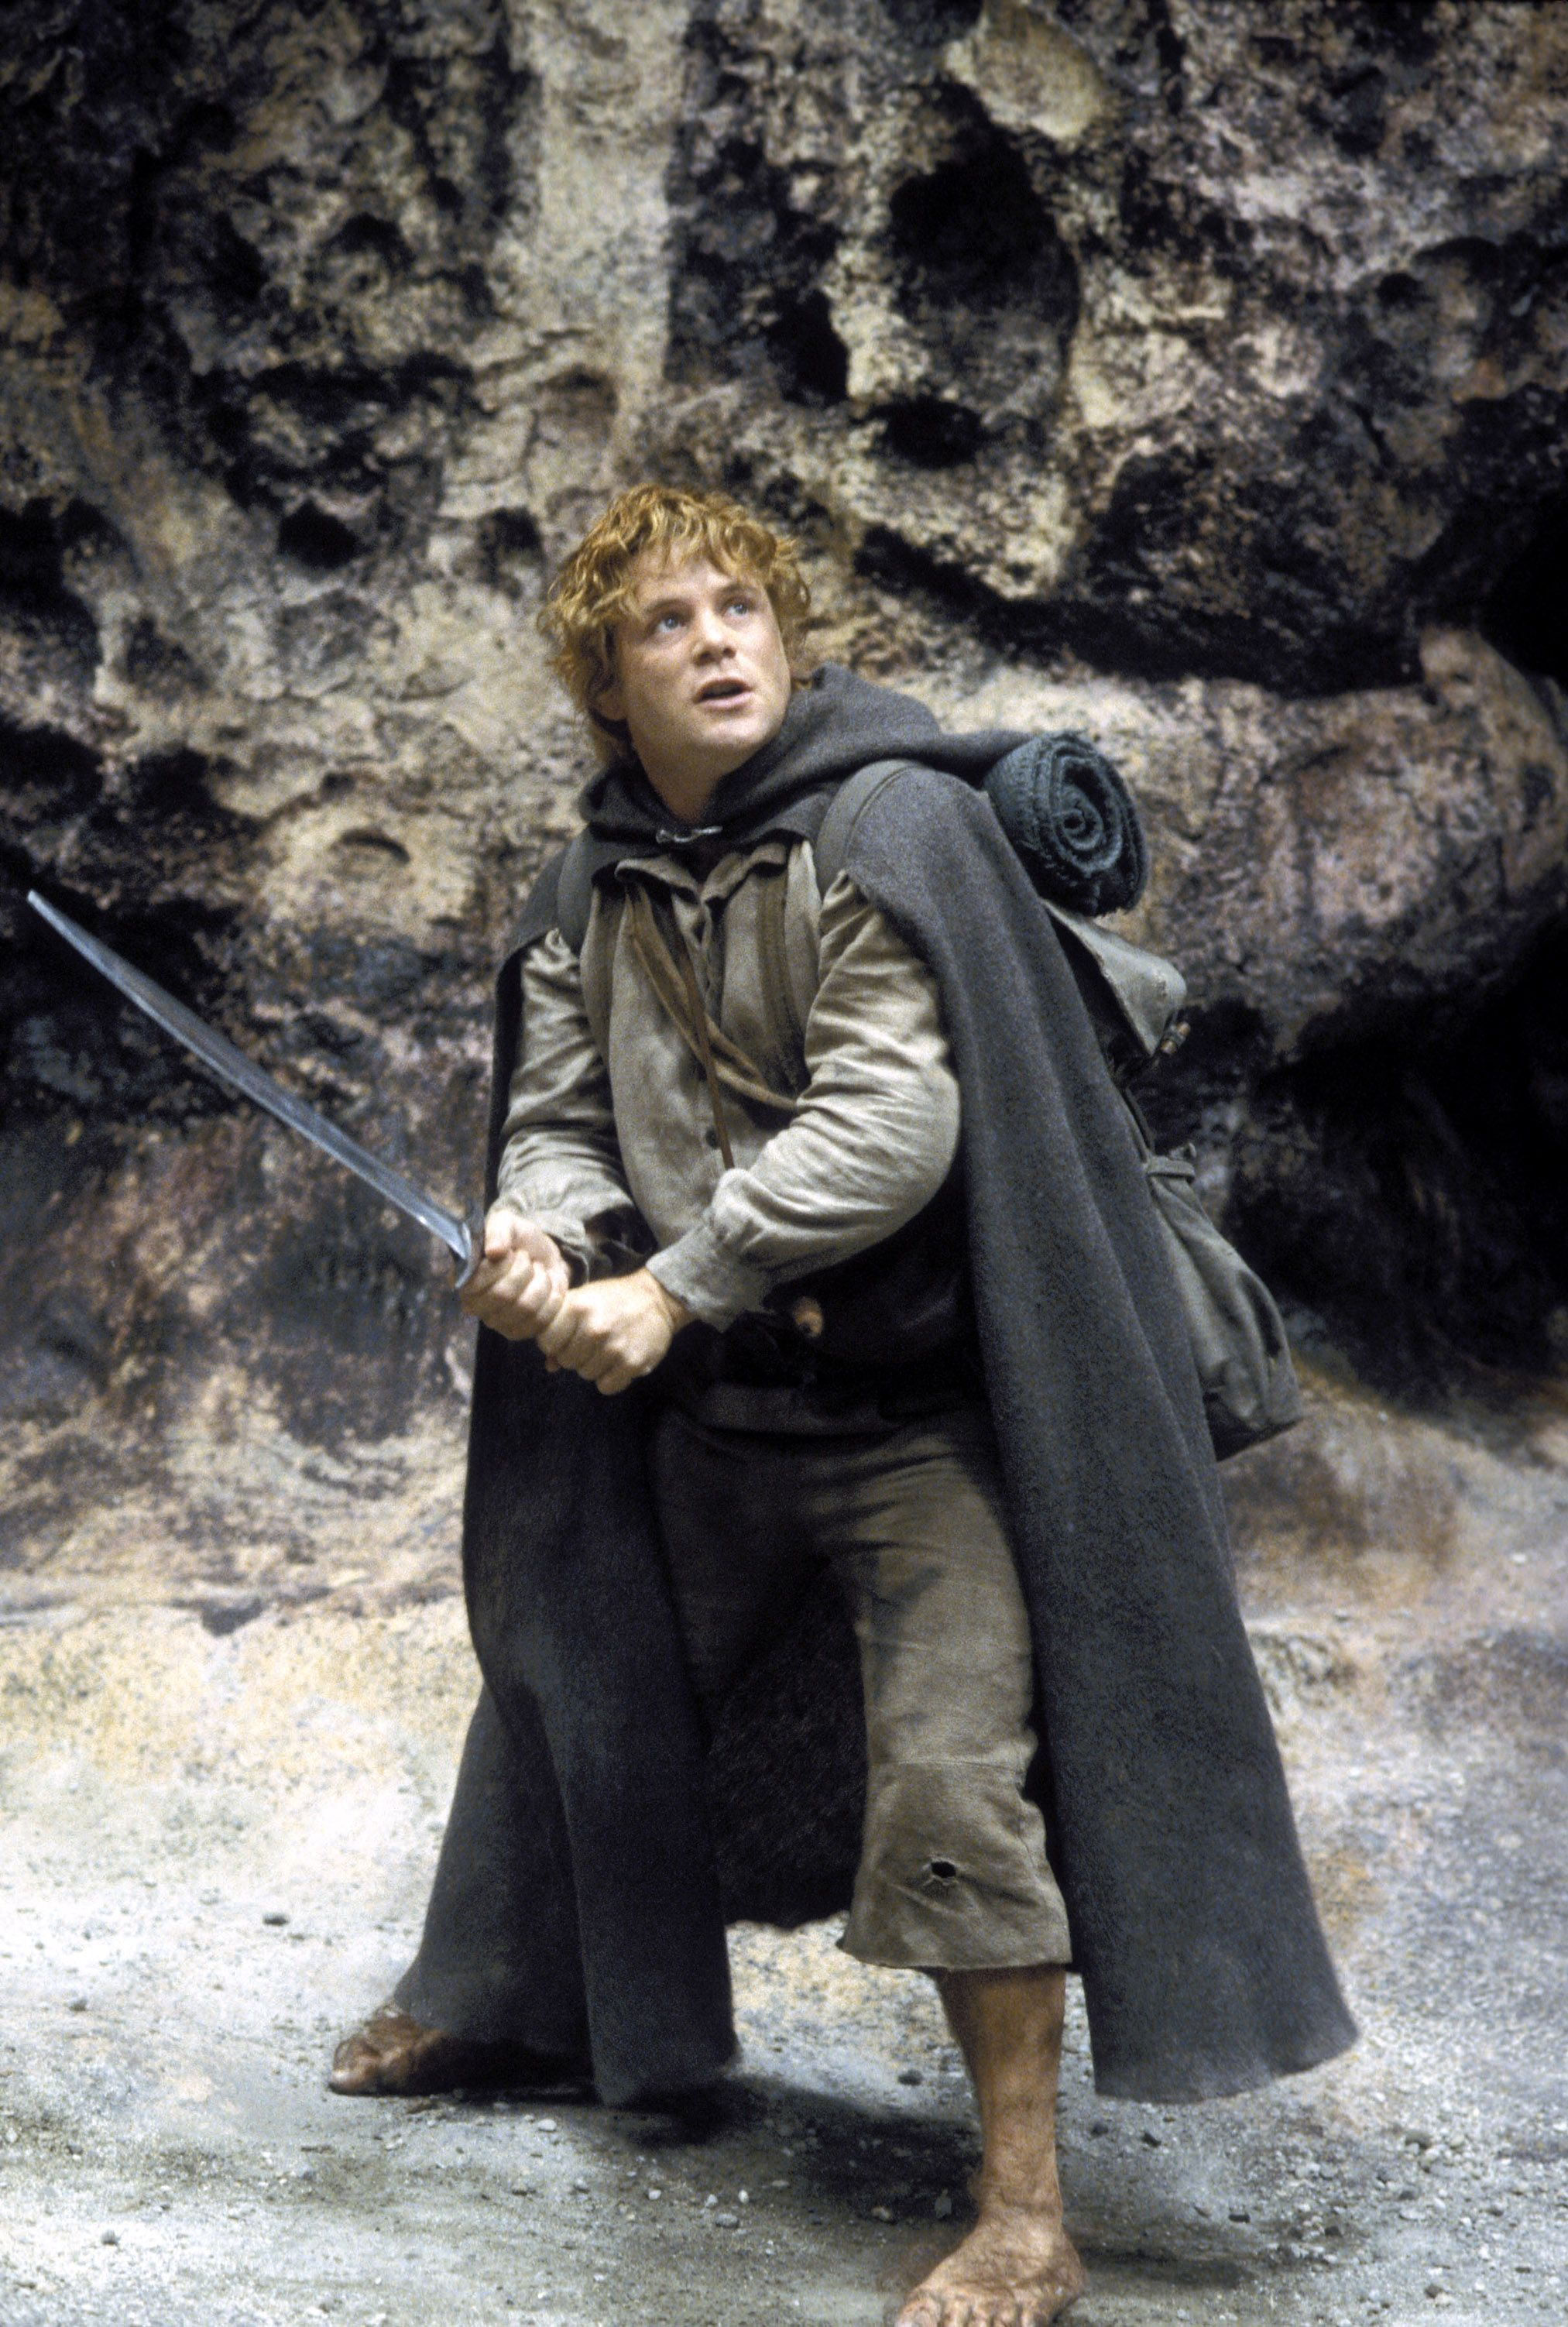 Happy Birthday to Samwise Gamgee (April 6th)! Lord of